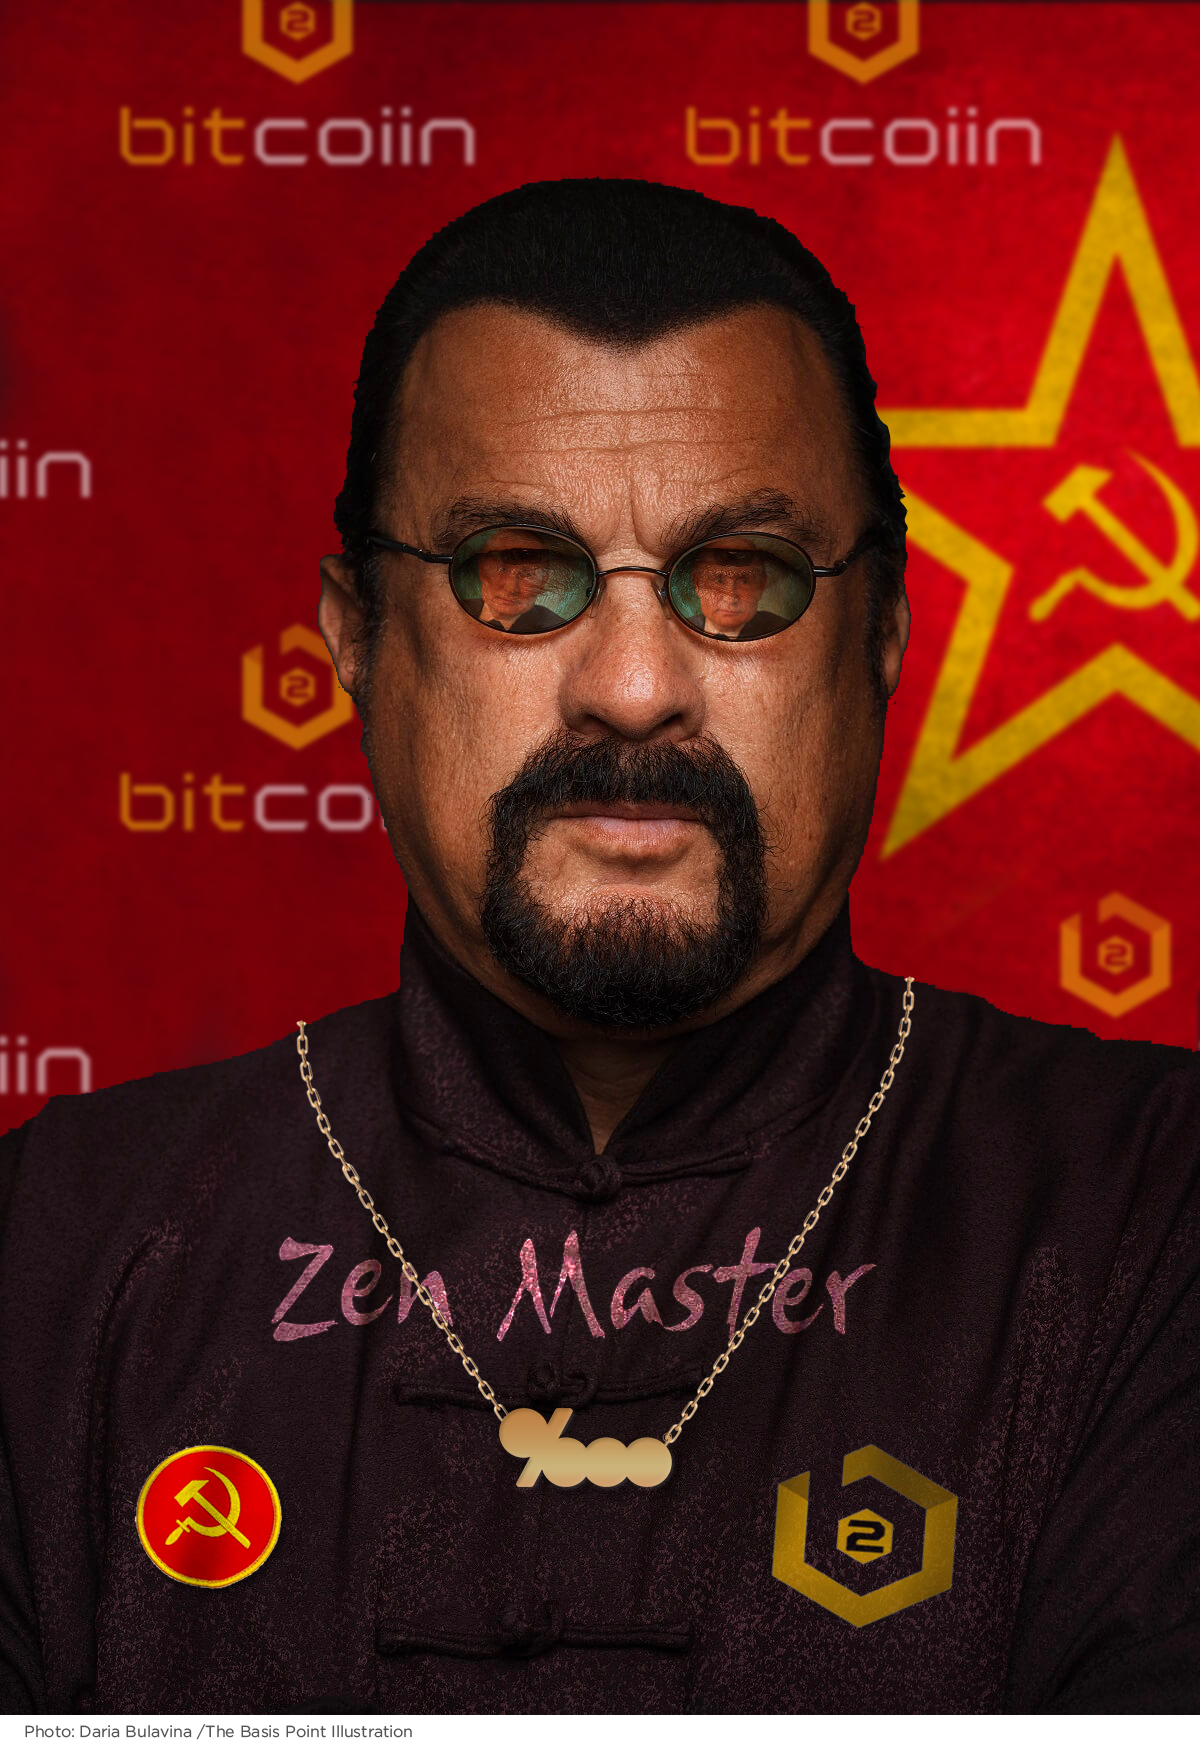 Paid Influencer Teachings From Steven Seagal Moscow S Bitcoin Zen Master The Basis Point